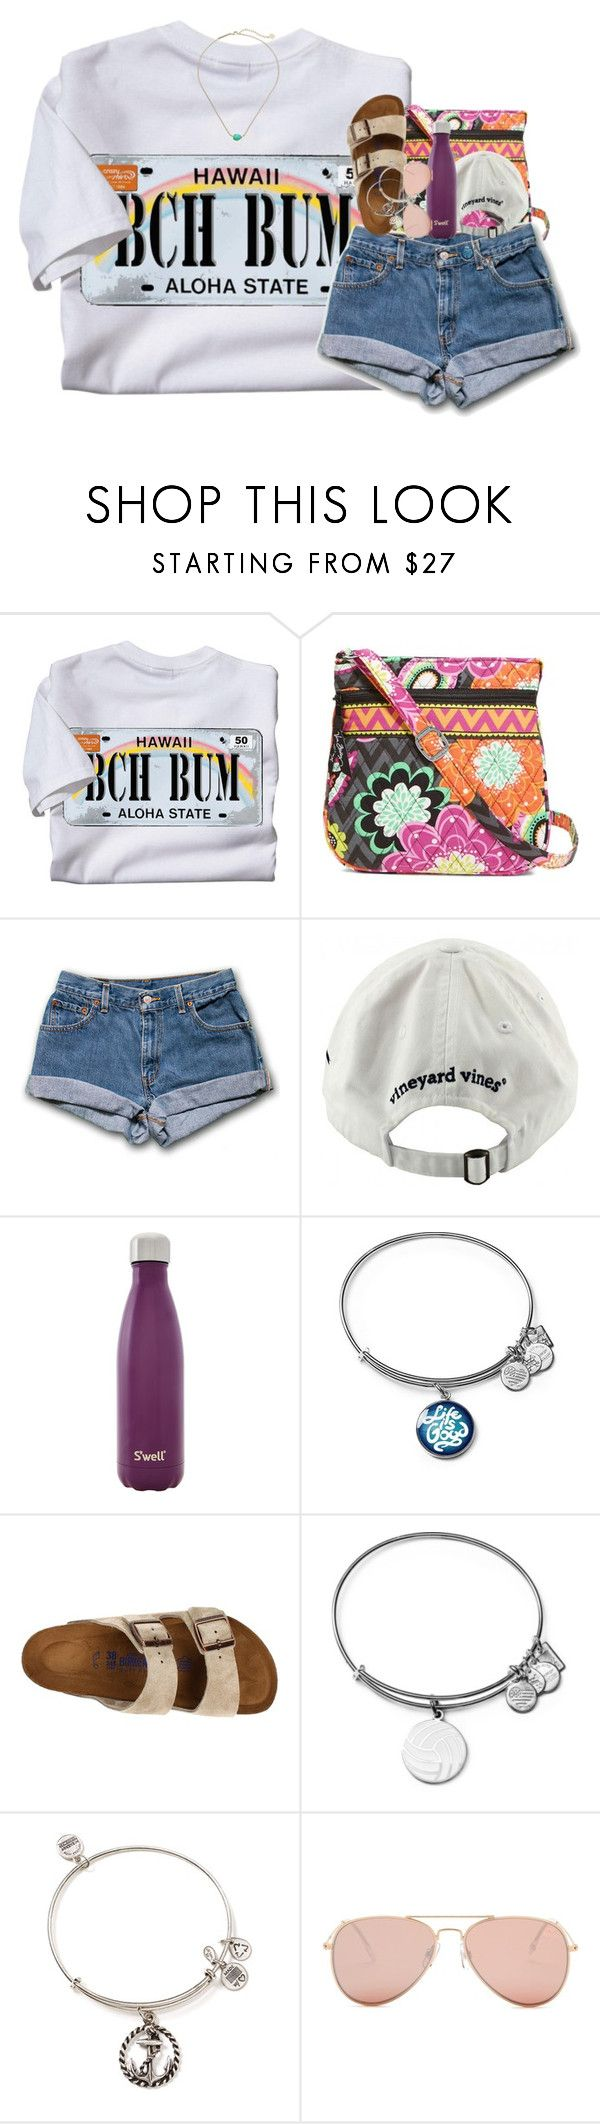 """a LOT in the D!"" by pineappleprincess1012 ❤ liked on Polyvore featuring Vera Bradley, Vineyard Vines, S'well, Alex and Ani, Birkenstock, Betsey Johnson and Kendra Scott"